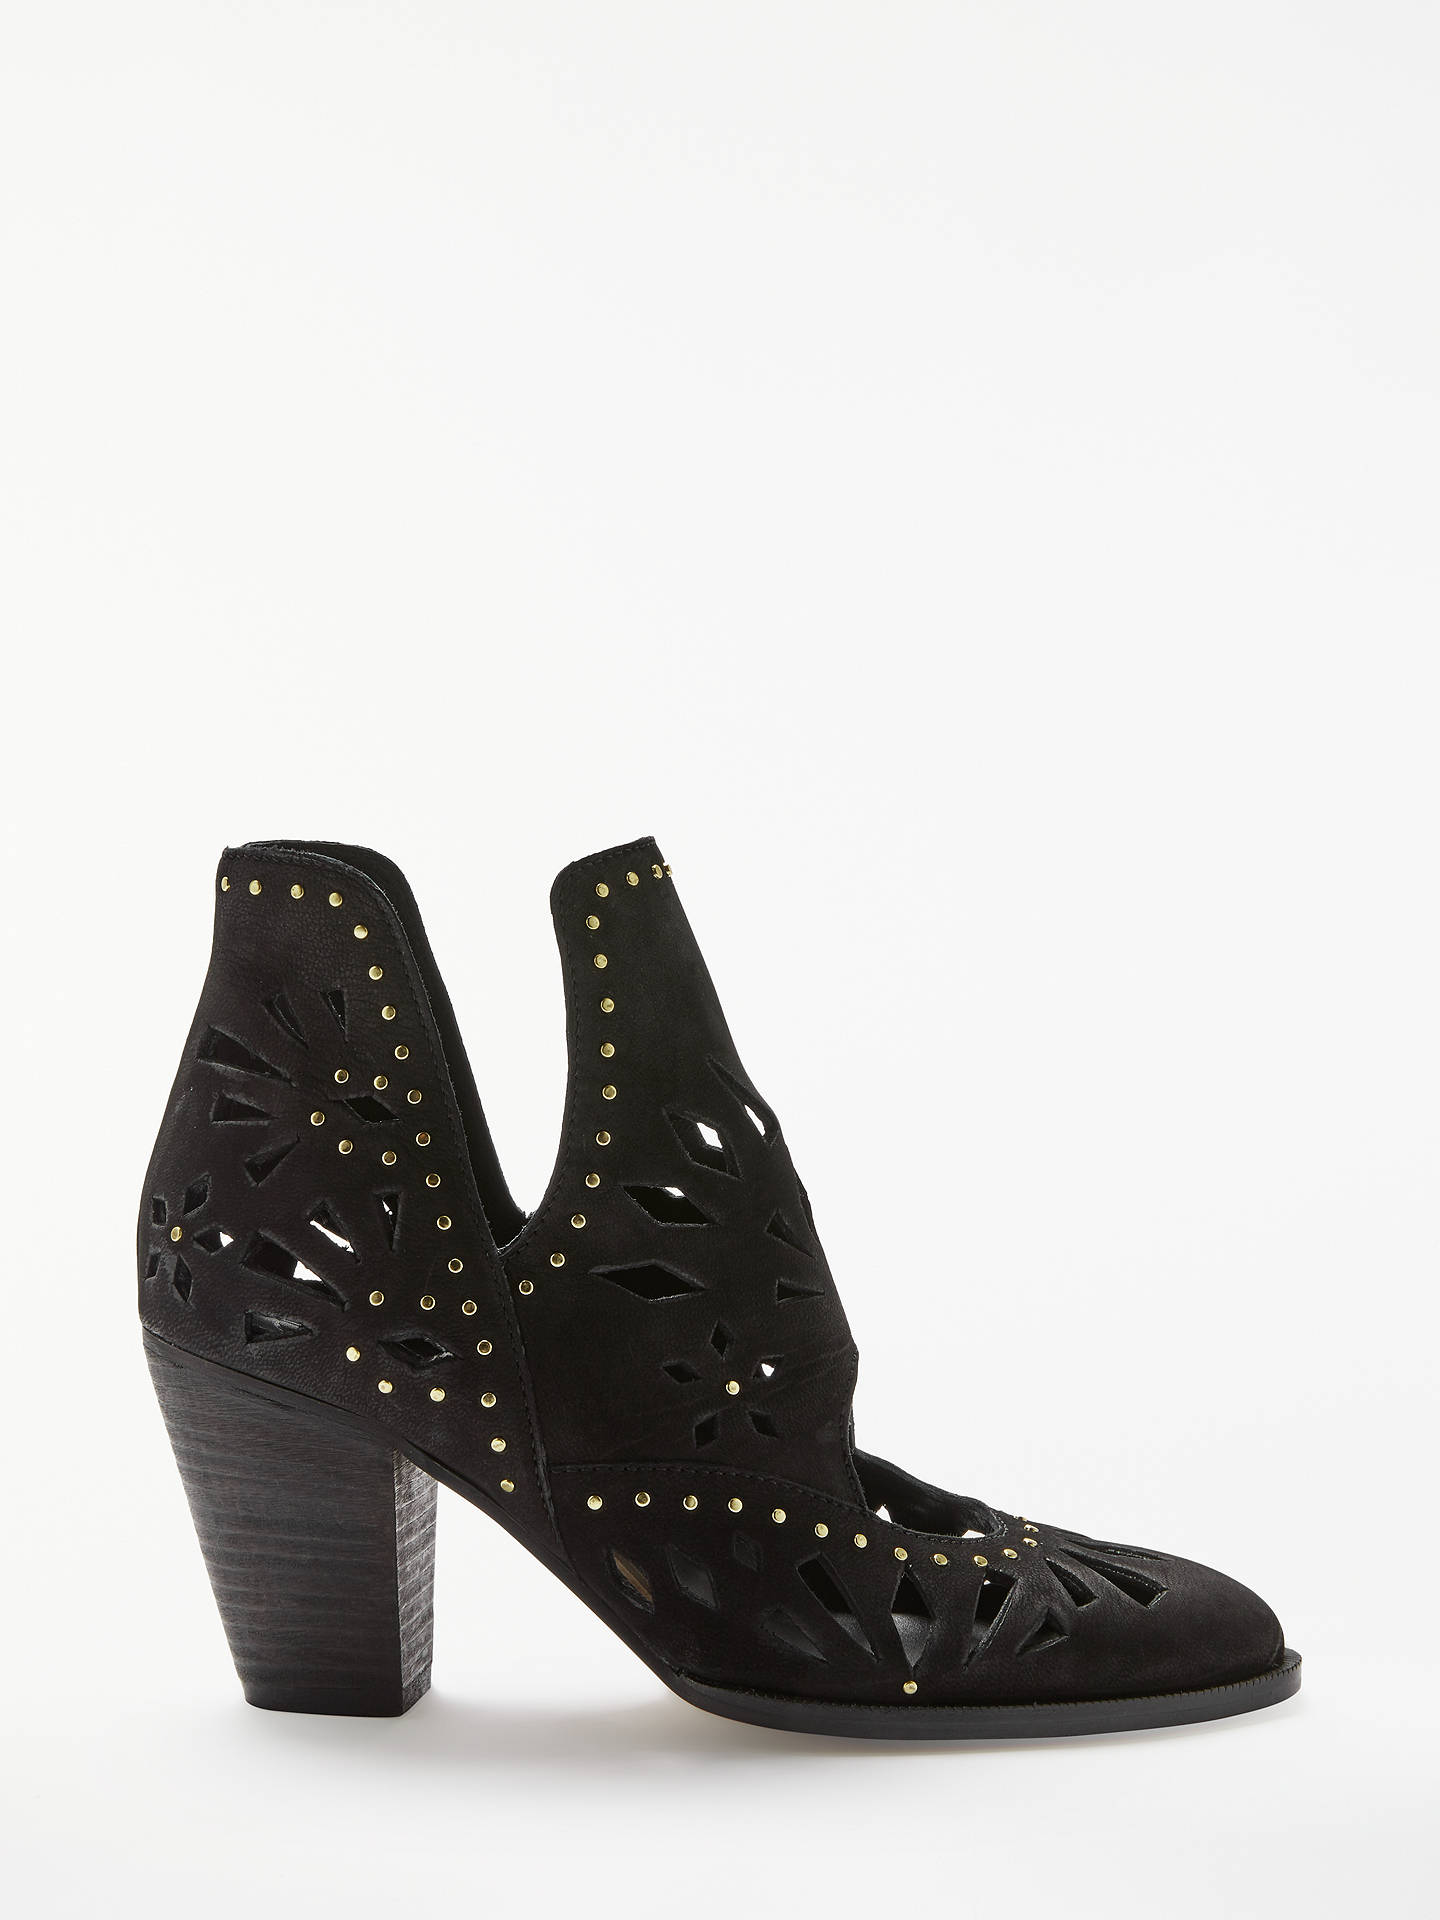 079be5faa02 AND/OR Petronia Cut Out Ankle Boots, Black Leather at John Lewis ...